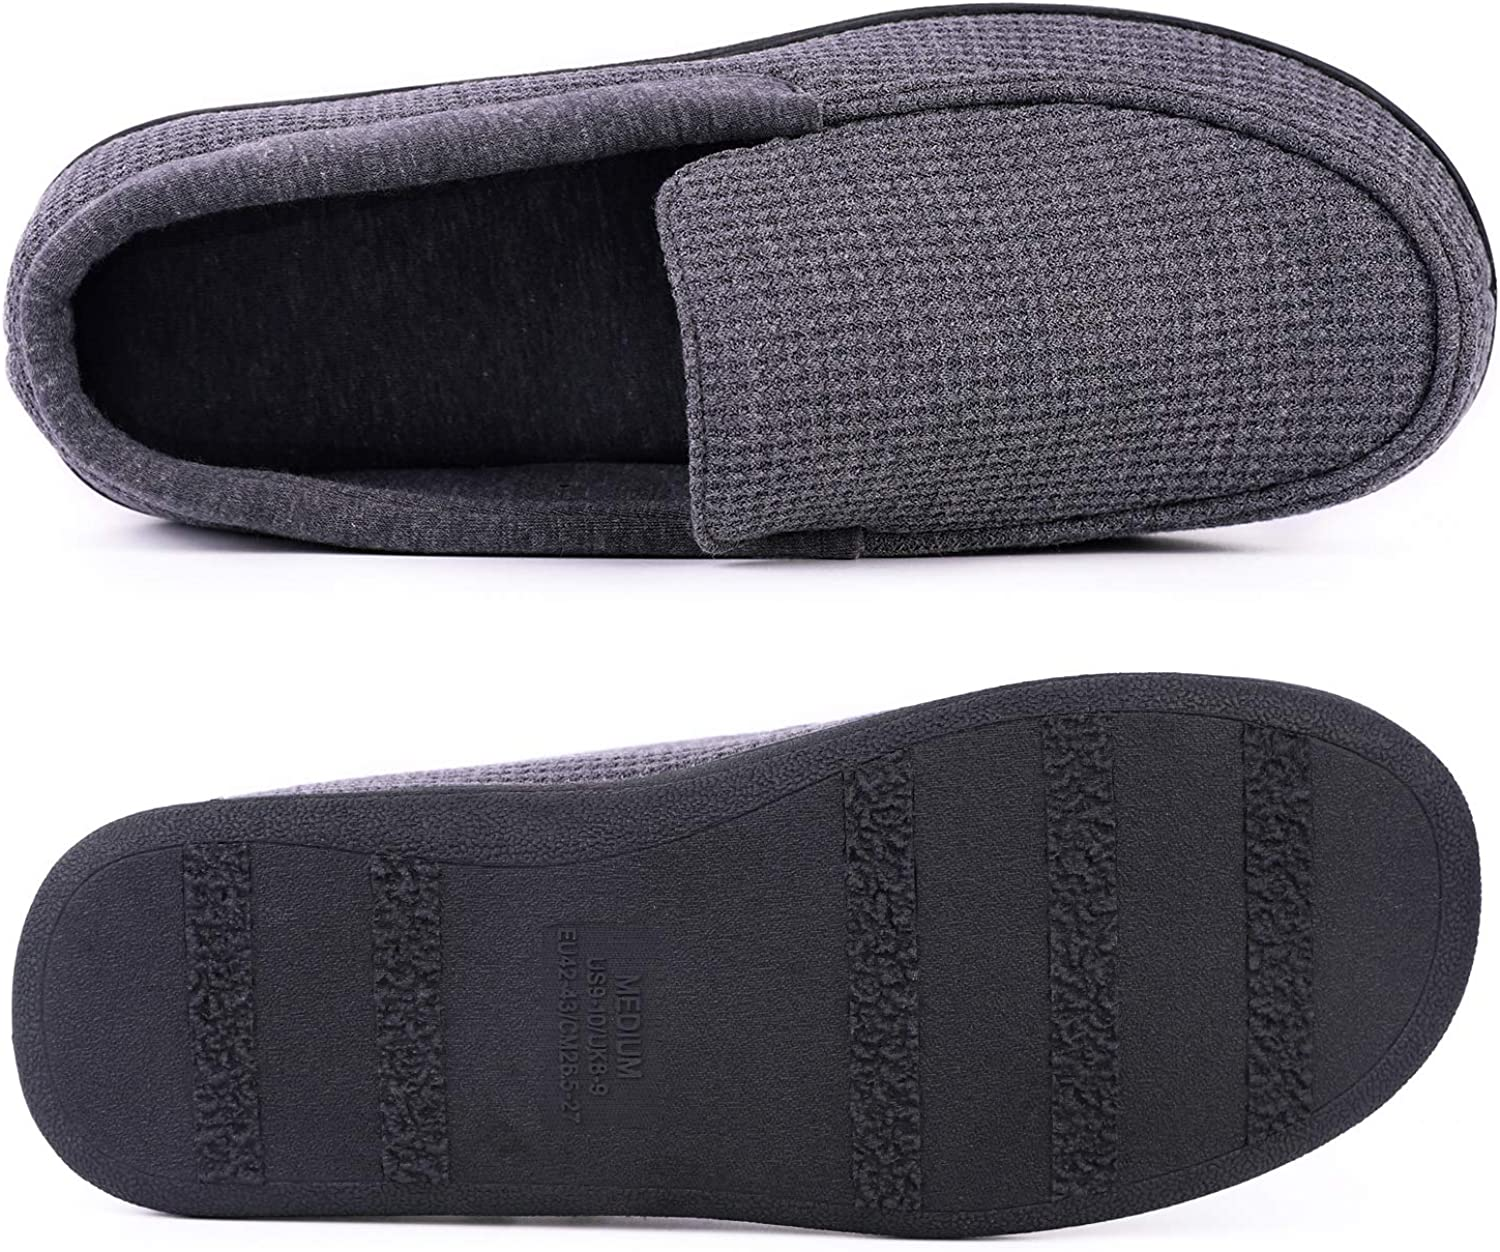 HomeTop Mens Comfort Memory Foam Moccasin Slippers Breathable Cotton Knit House Shoes w//Anti-Skid Rubber Sole